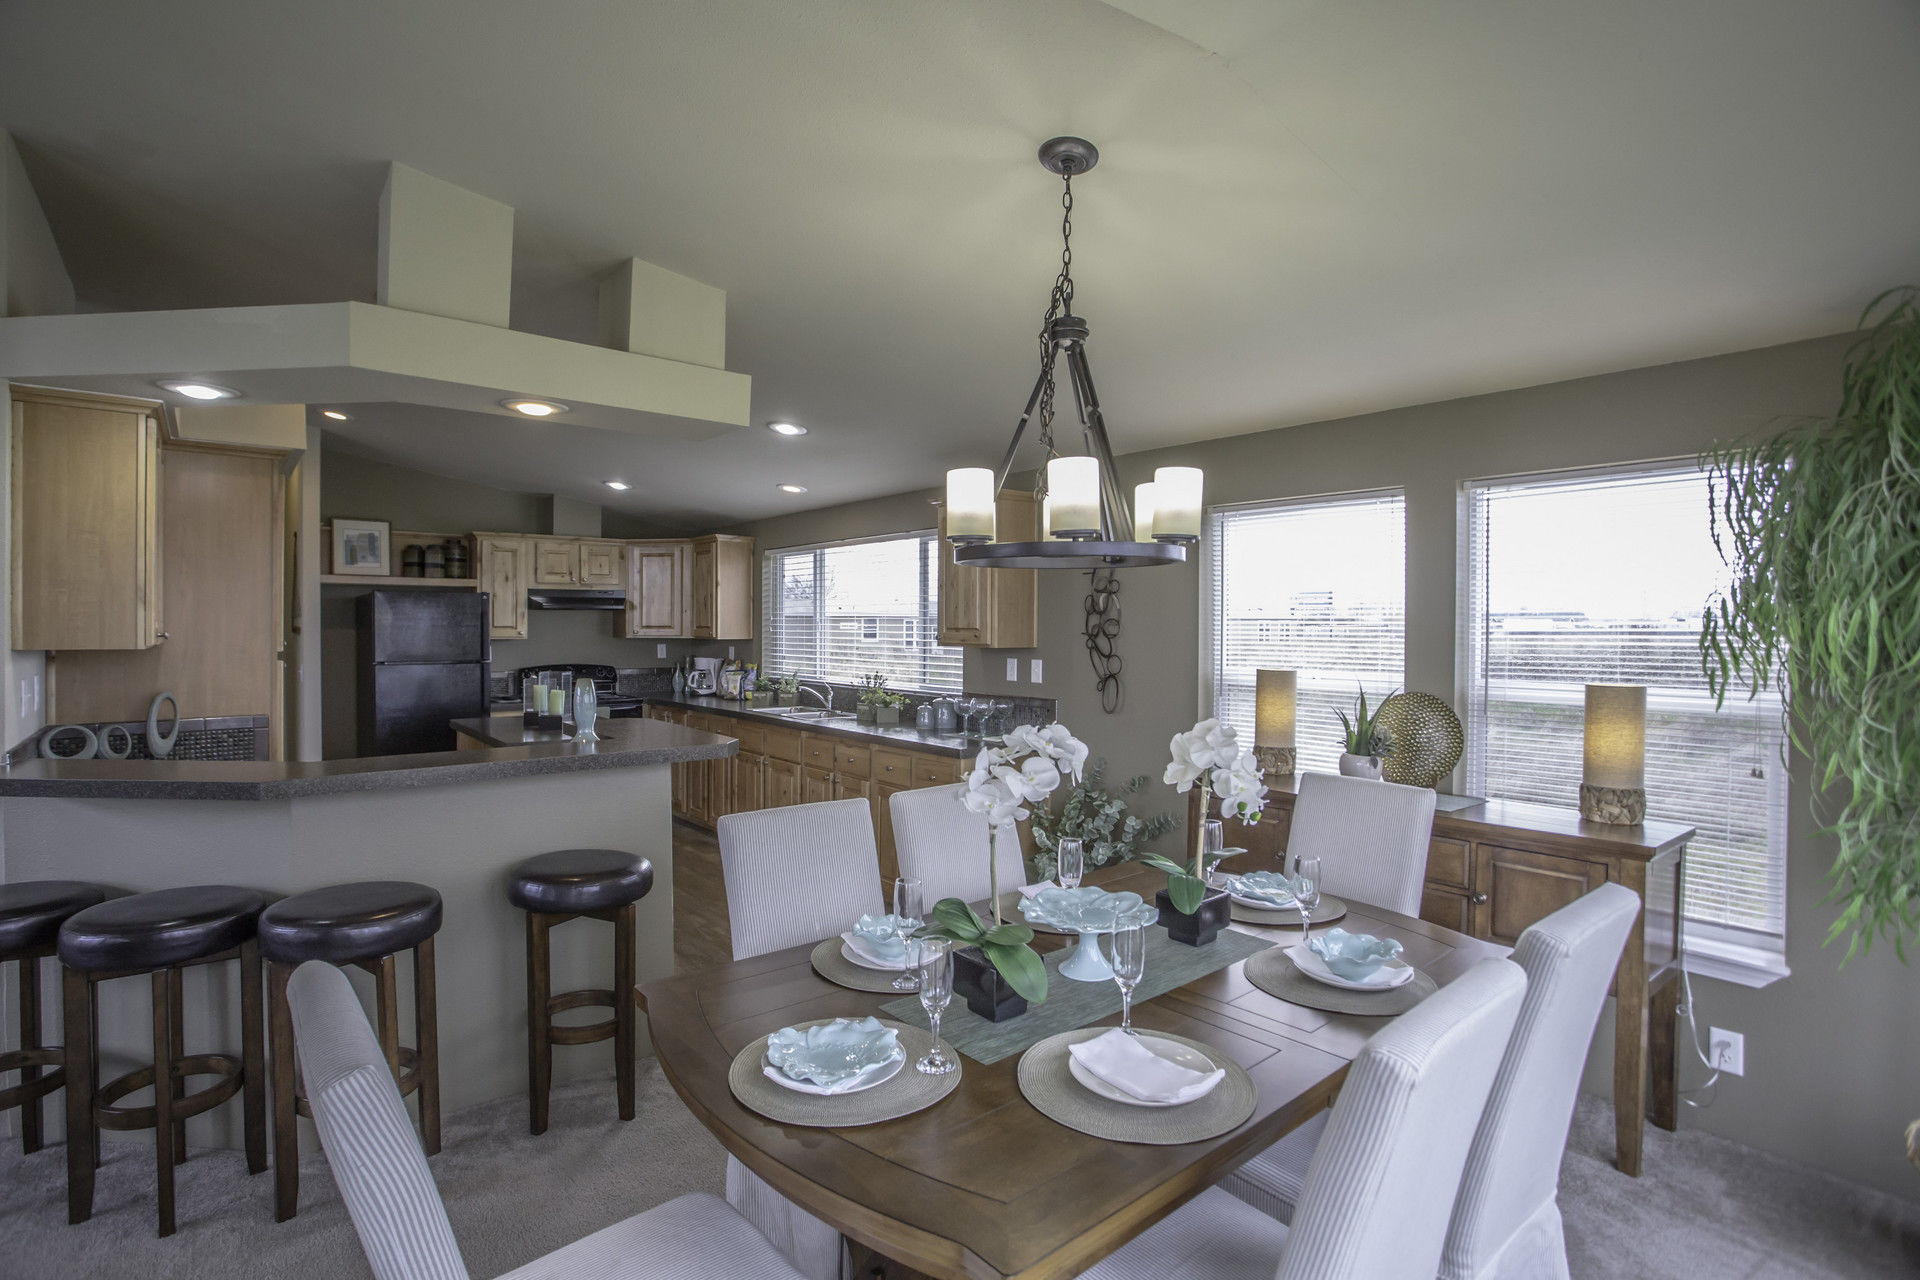 Rhode Island Sales Tax >> The Sunset Bay 3 bed / 2 bath / 1500 sqft affordable home for $78900 | Model 4P56S52 from Homes ...